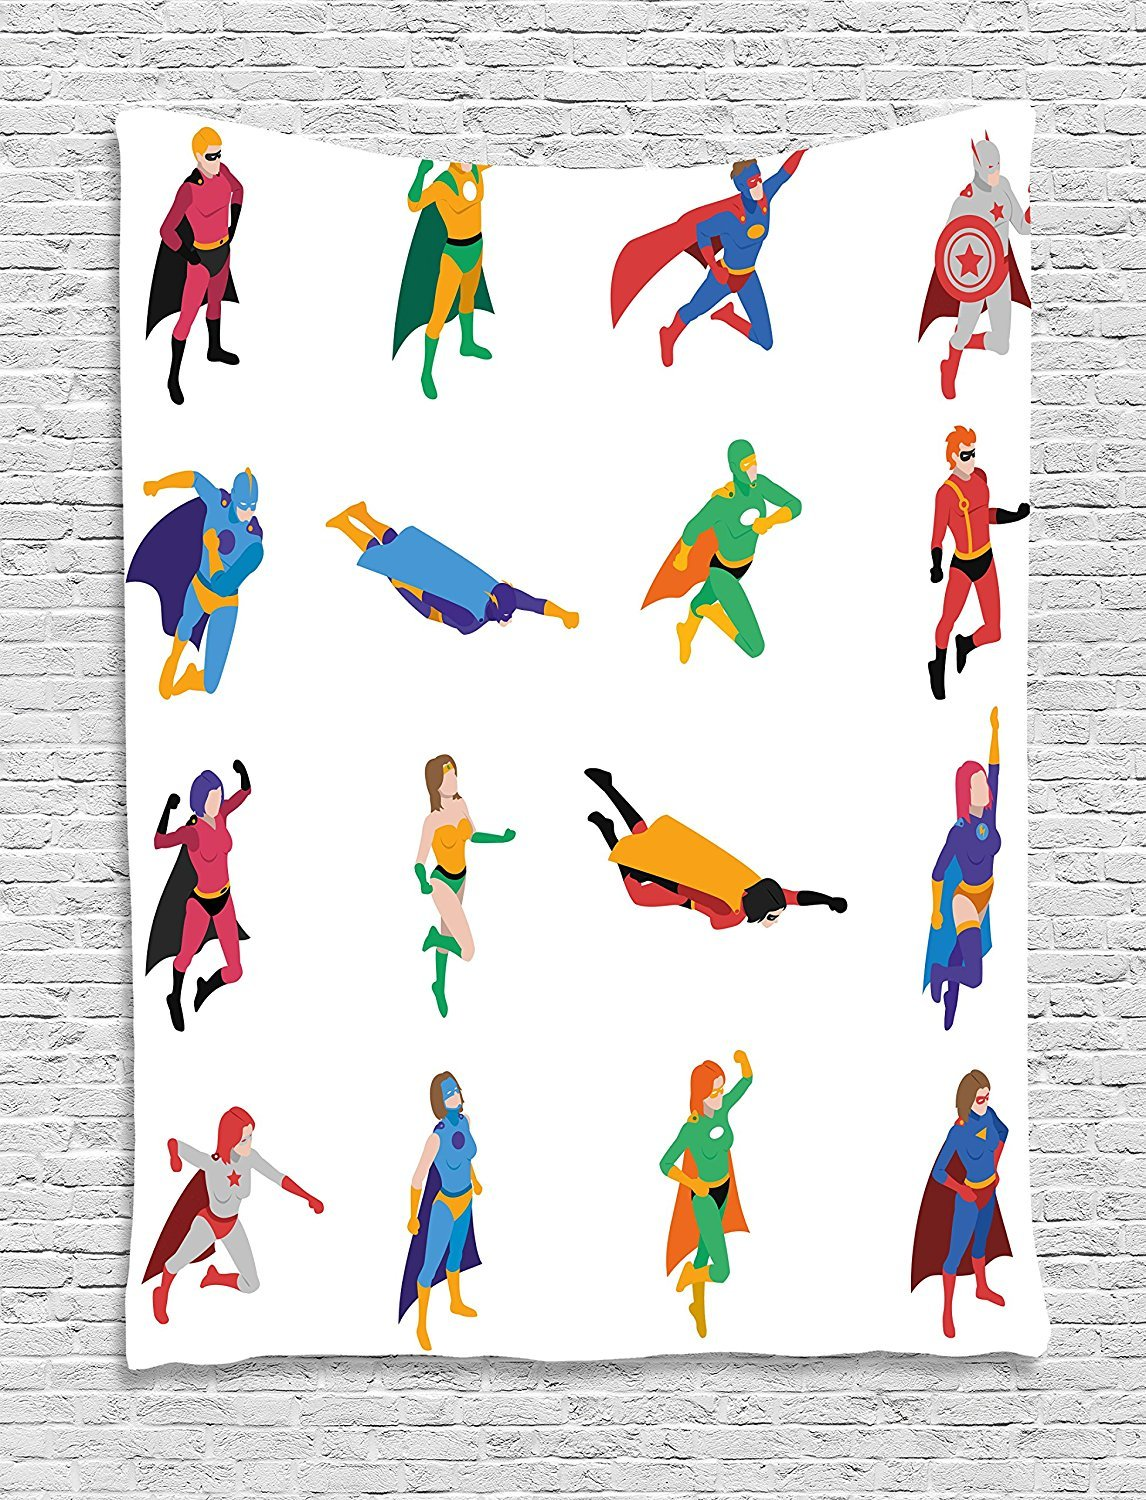 asddcdfdd Superhero Tapestry, Heroic Characters with Supernatural Powers Popular Strip Protector Icons Image, Wall Hanging for Bedroom Living Room Dorm, 60 W X 80 L Inches, Multicolor